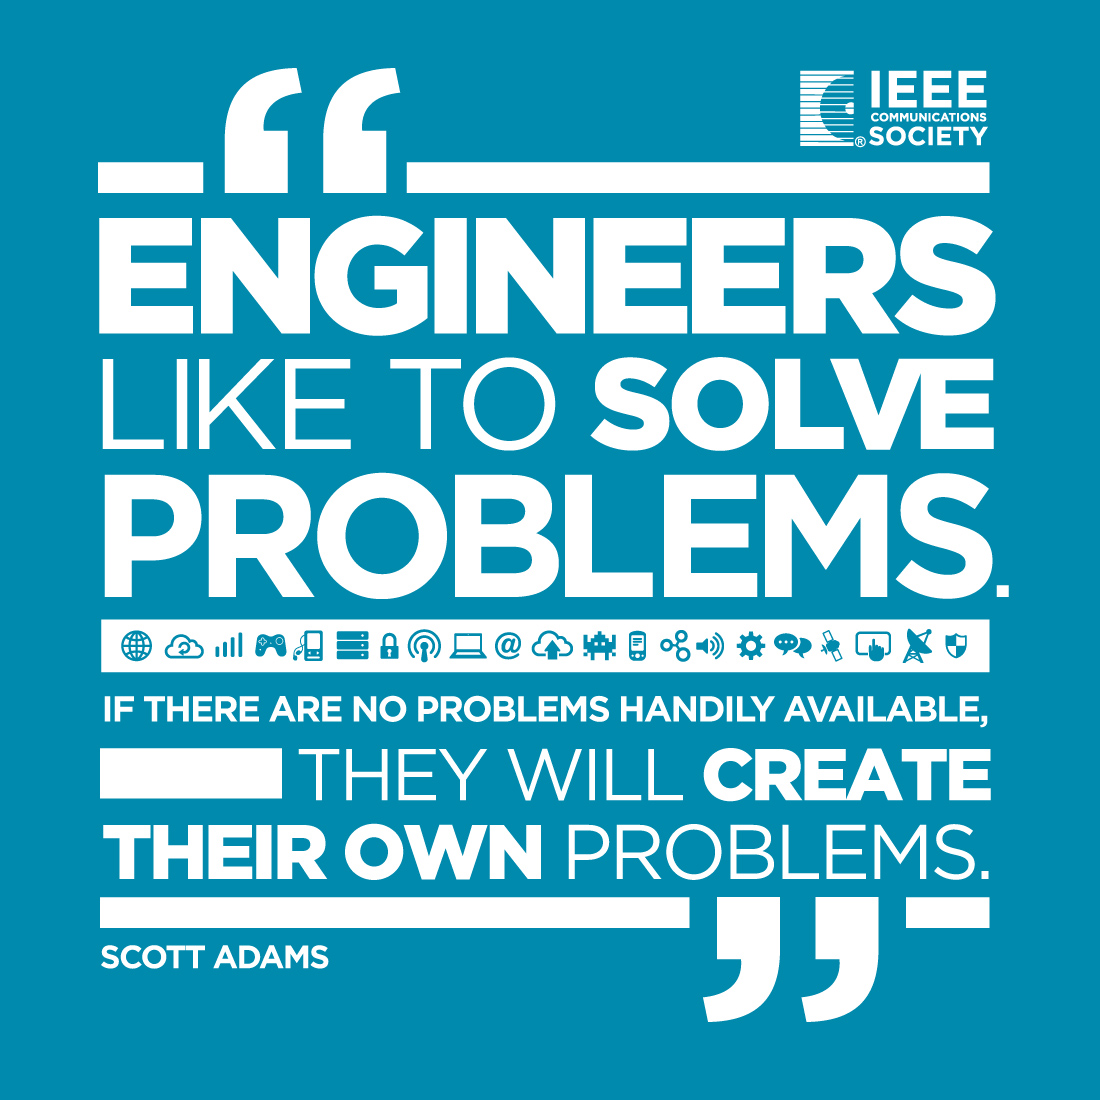 engineers day quotes essay Engineer day images, gif, wallpapers, pics, funny memes & photos for whatsapp dp 2017 to wish happy engineer day 2017 on 15th september.